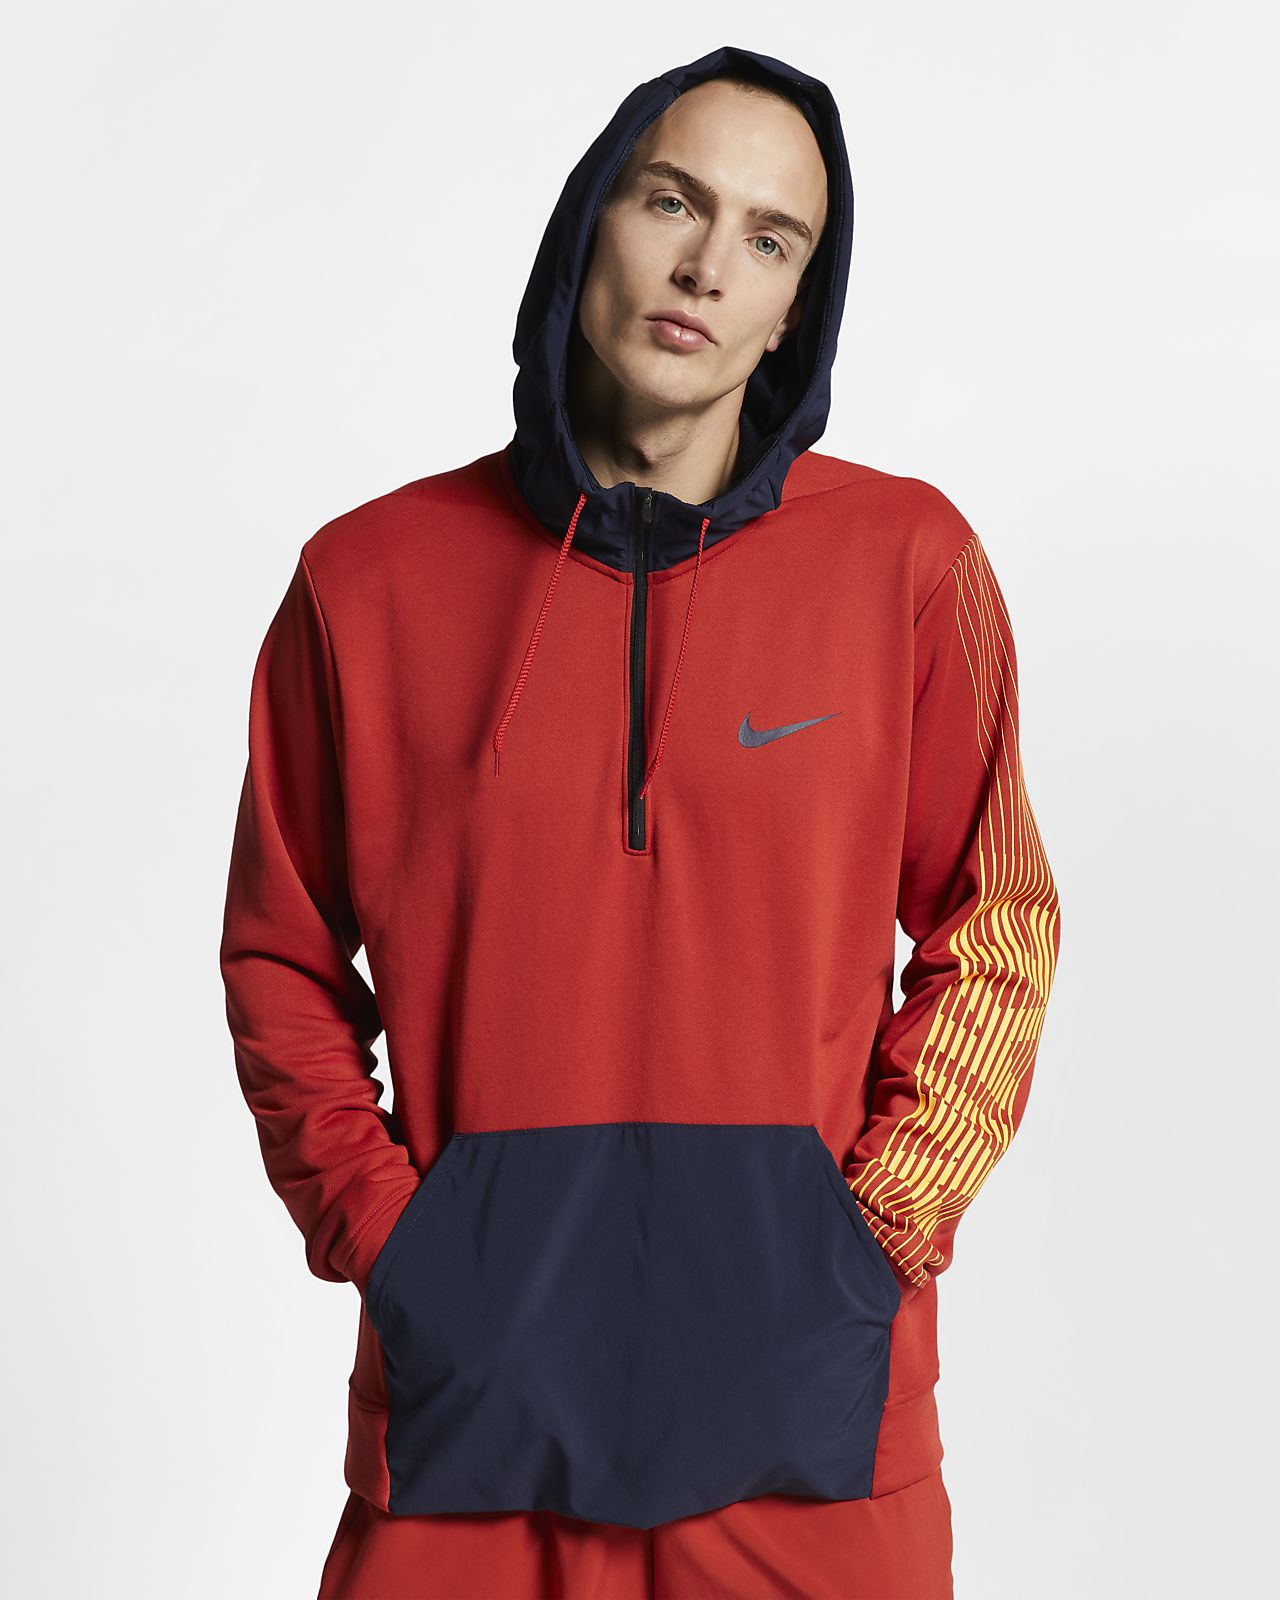 Nike Dri-FIT Men's Fleece Training Hoodie